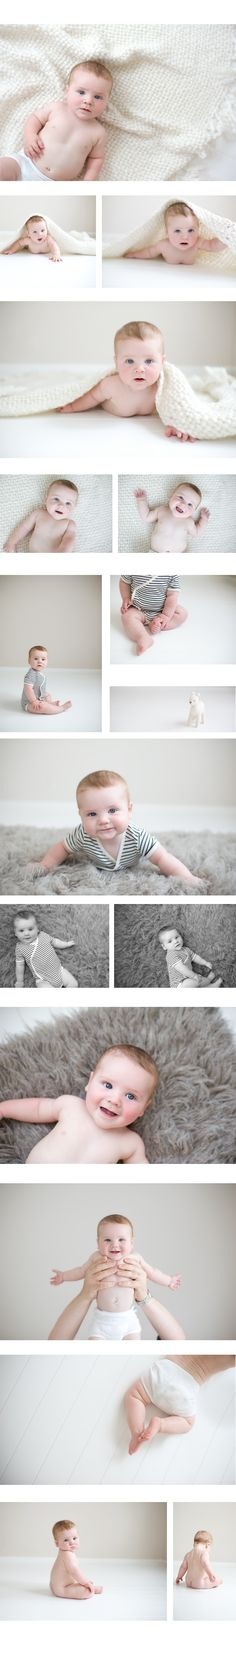 proffitt photographi, babi pic, 6month babi, newborn photos, baby photos